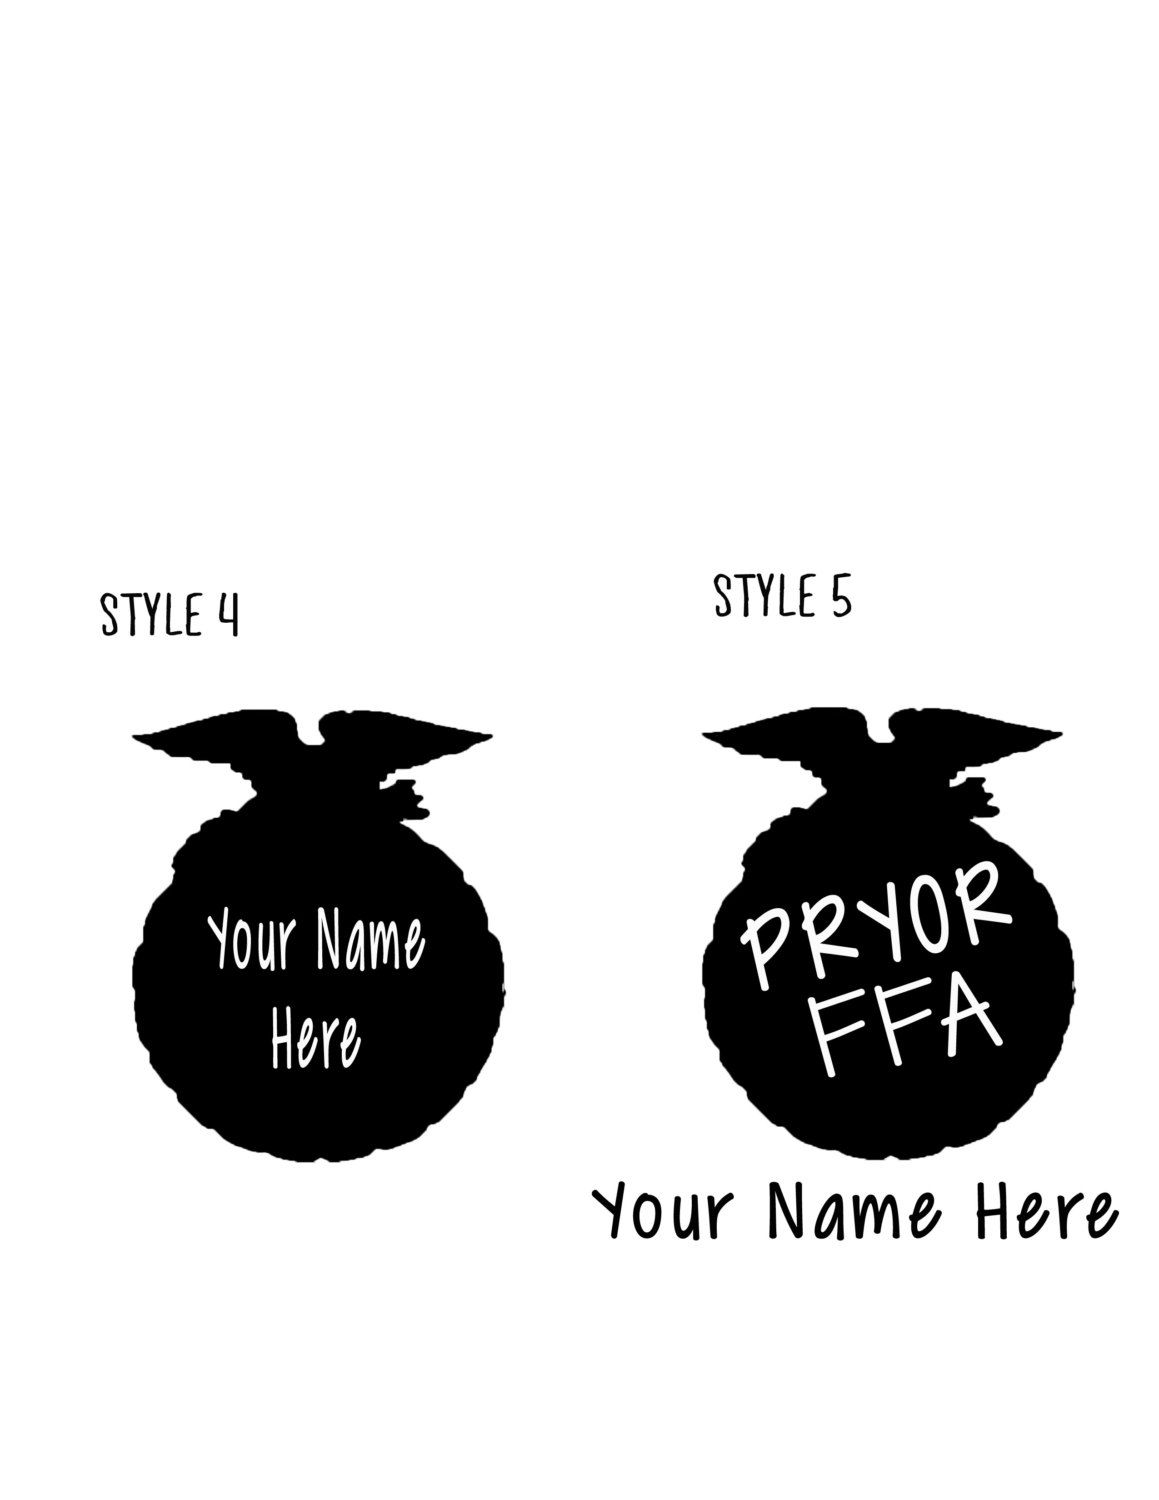 Personalized Chapter State Ffa Emblem Decals Stickers By